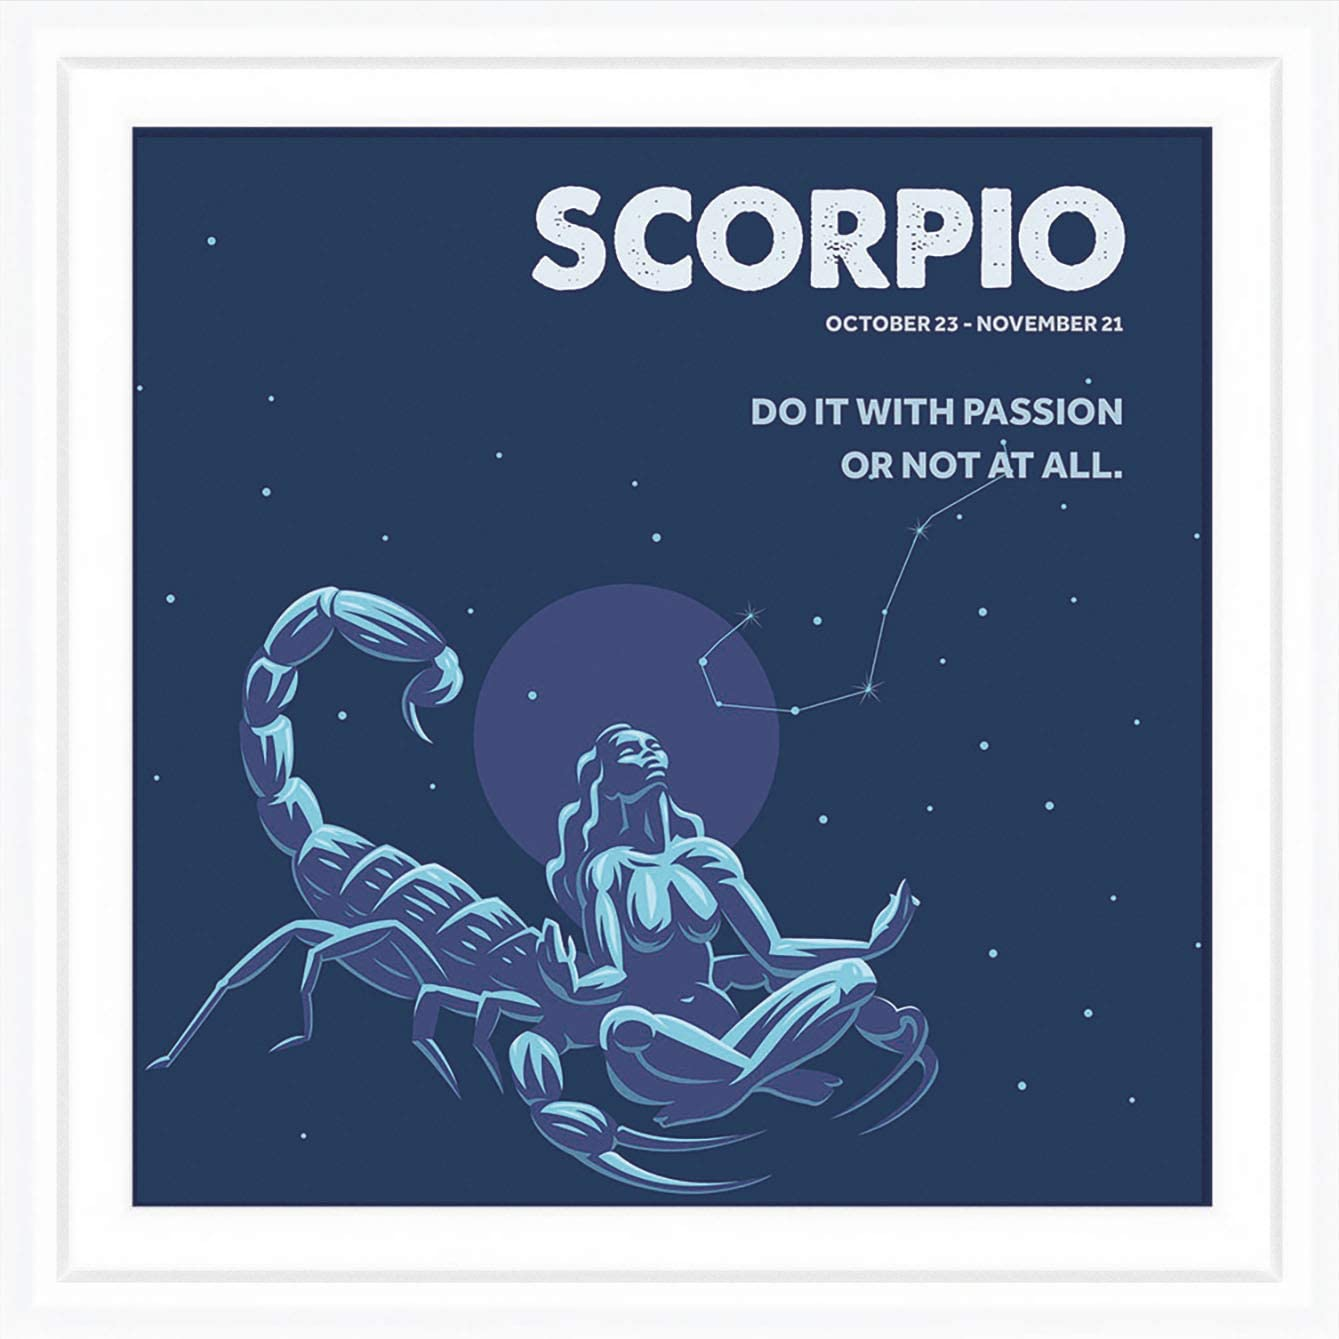 Scorpio Zodiac Sign Gifts   7x7 Tile Artwork for Scorpio Sign Men or Women   Ideal Gift for Astrology Lovers   Zodiac Related Present   Perfect Horoscope Themed Decorations